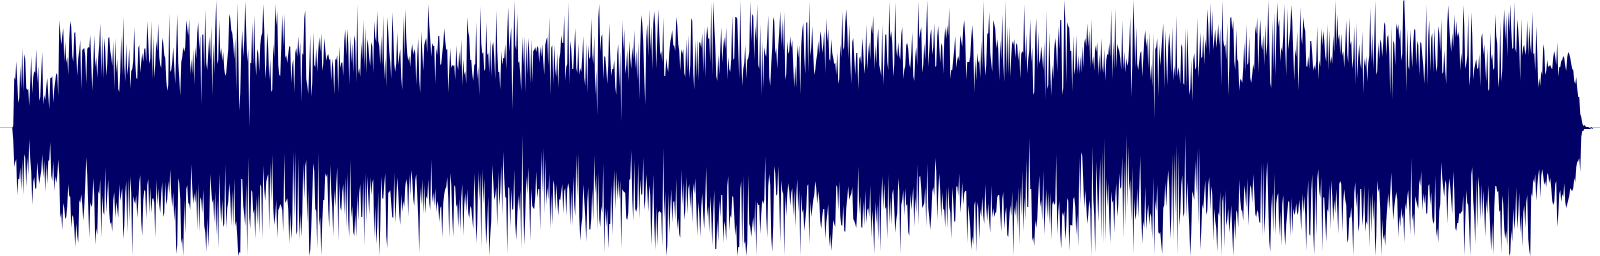 waveform of track #143671